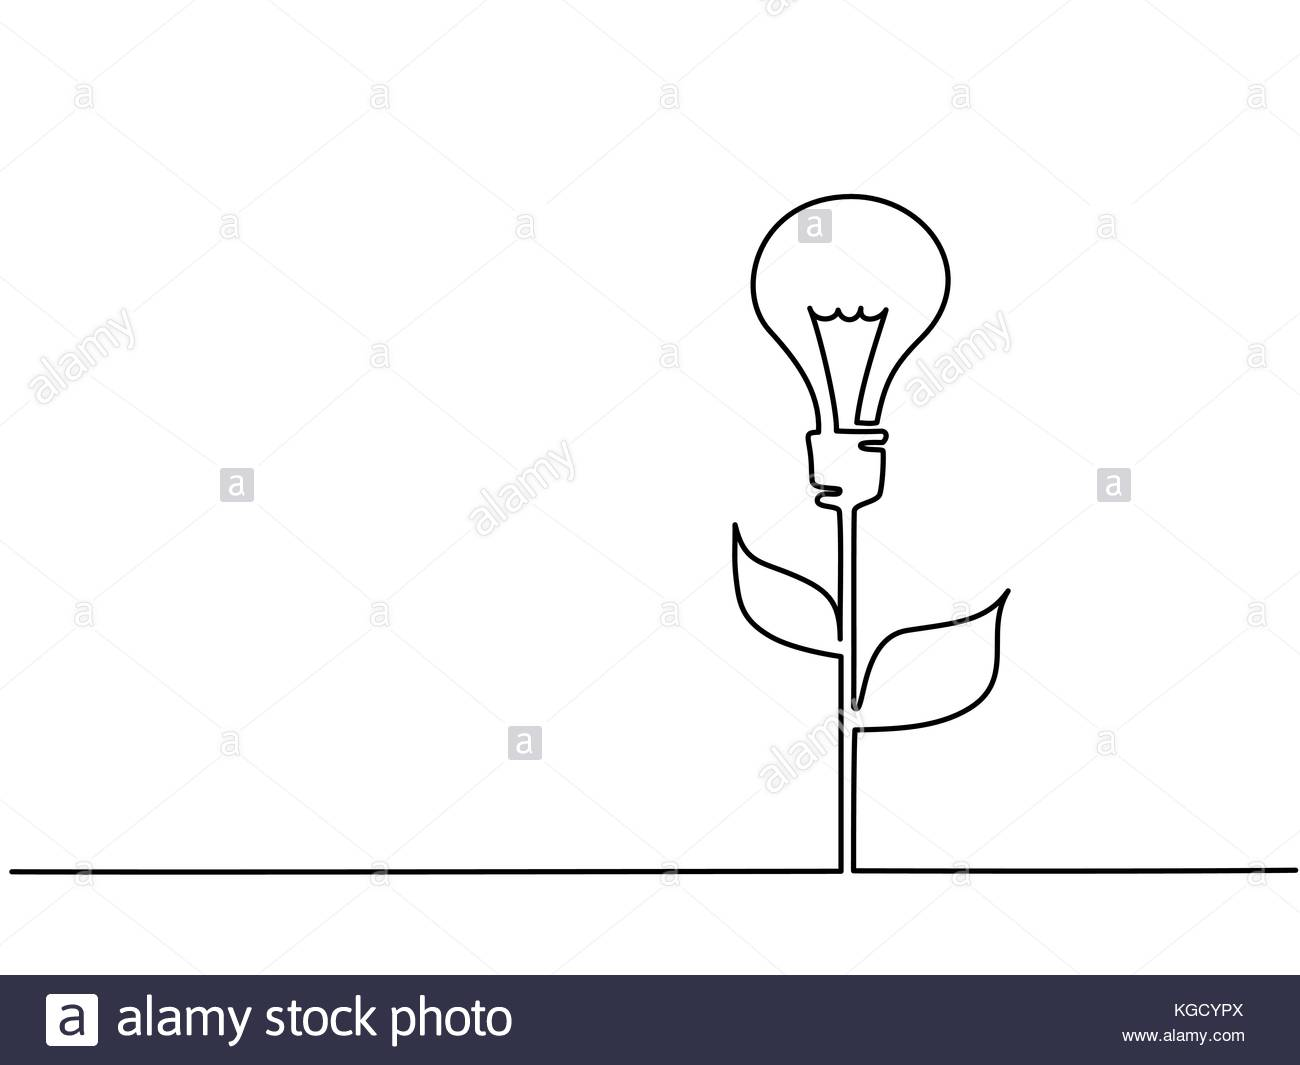 1300x1065 Continuous Line Drawing. Electic Light Bulb Illuminated On Stem